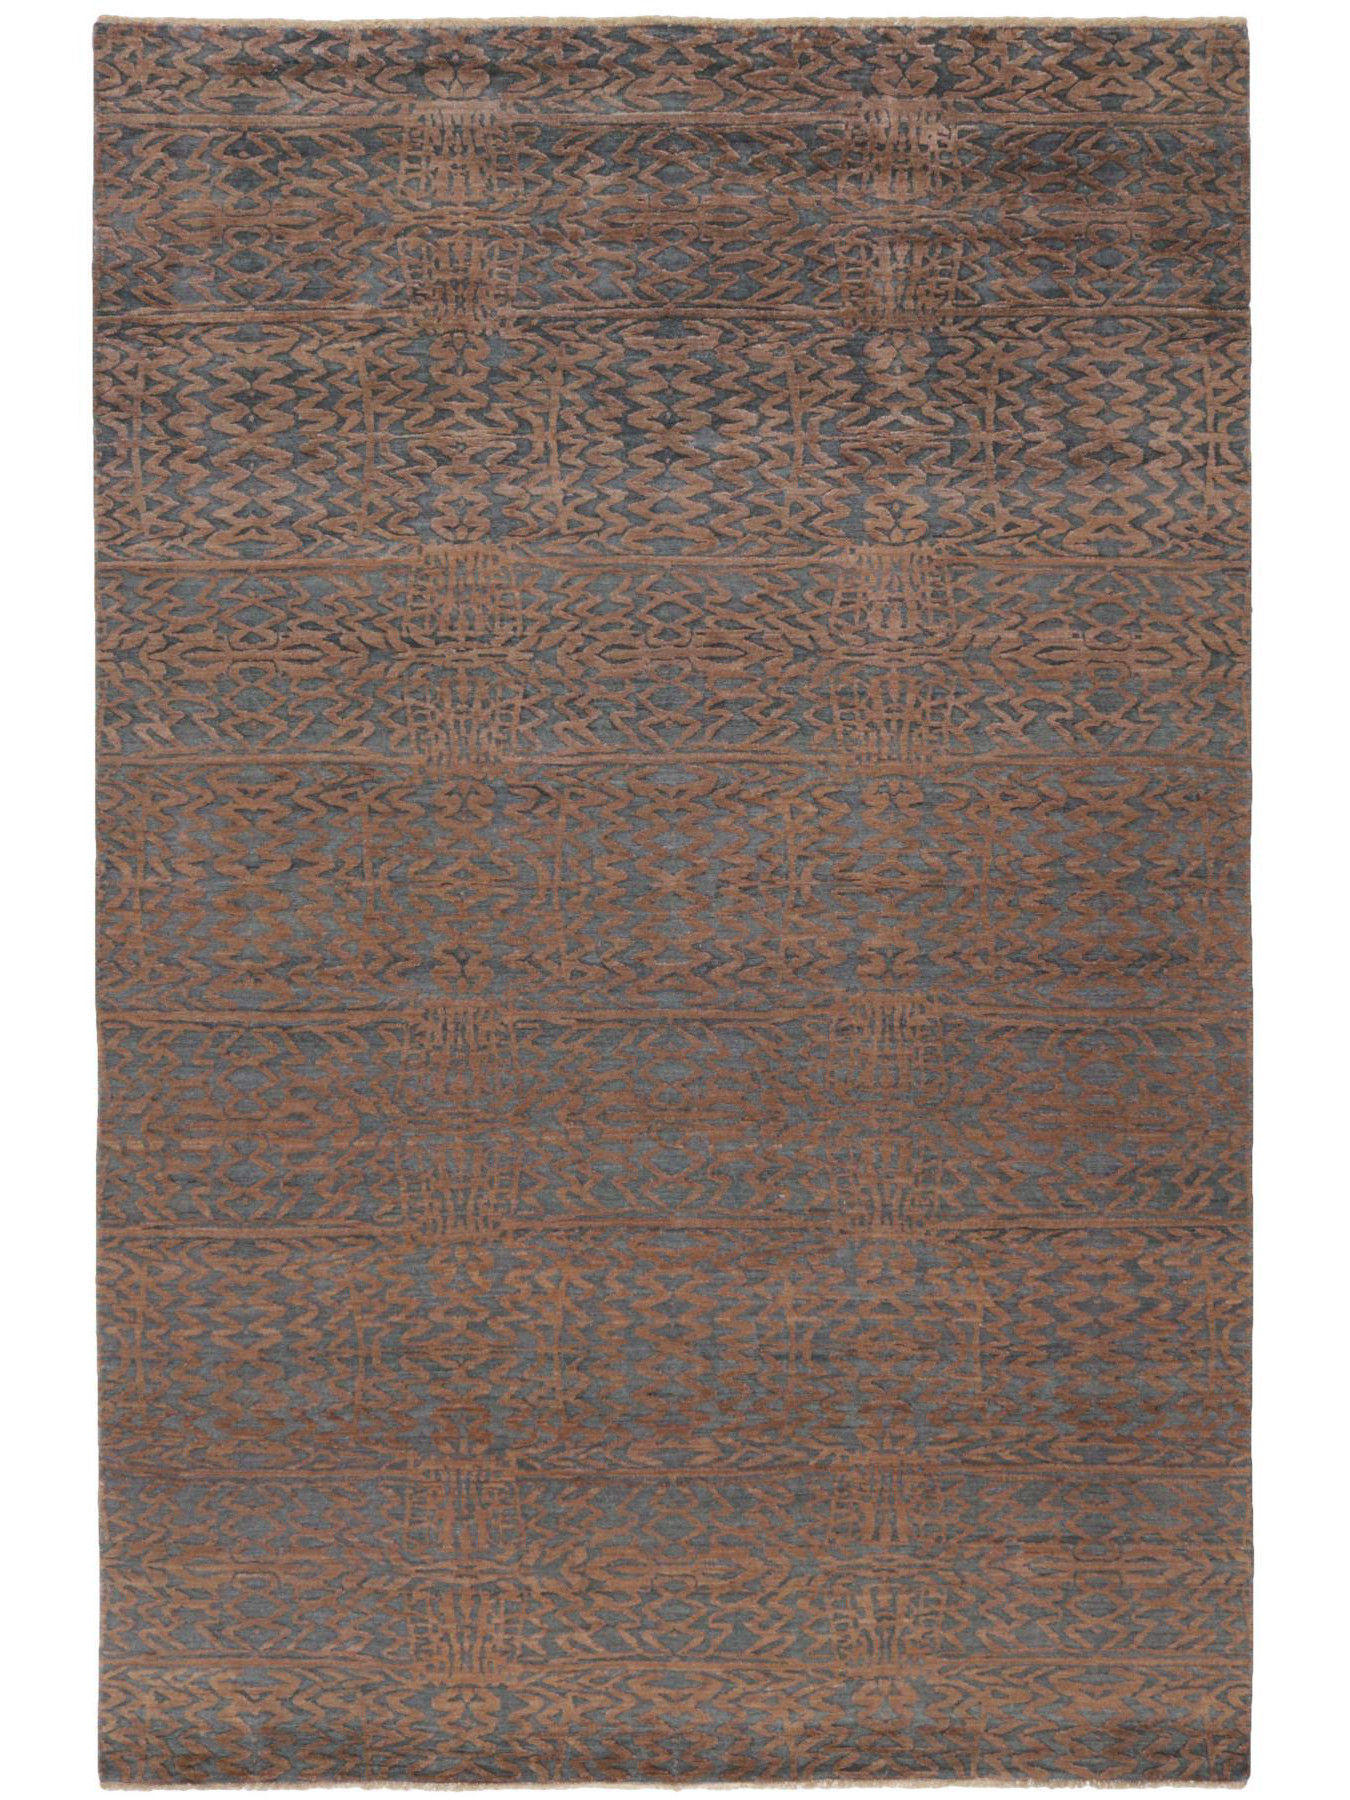 Tapis Luxury - Damask-AL-417 HB-6/HB-19